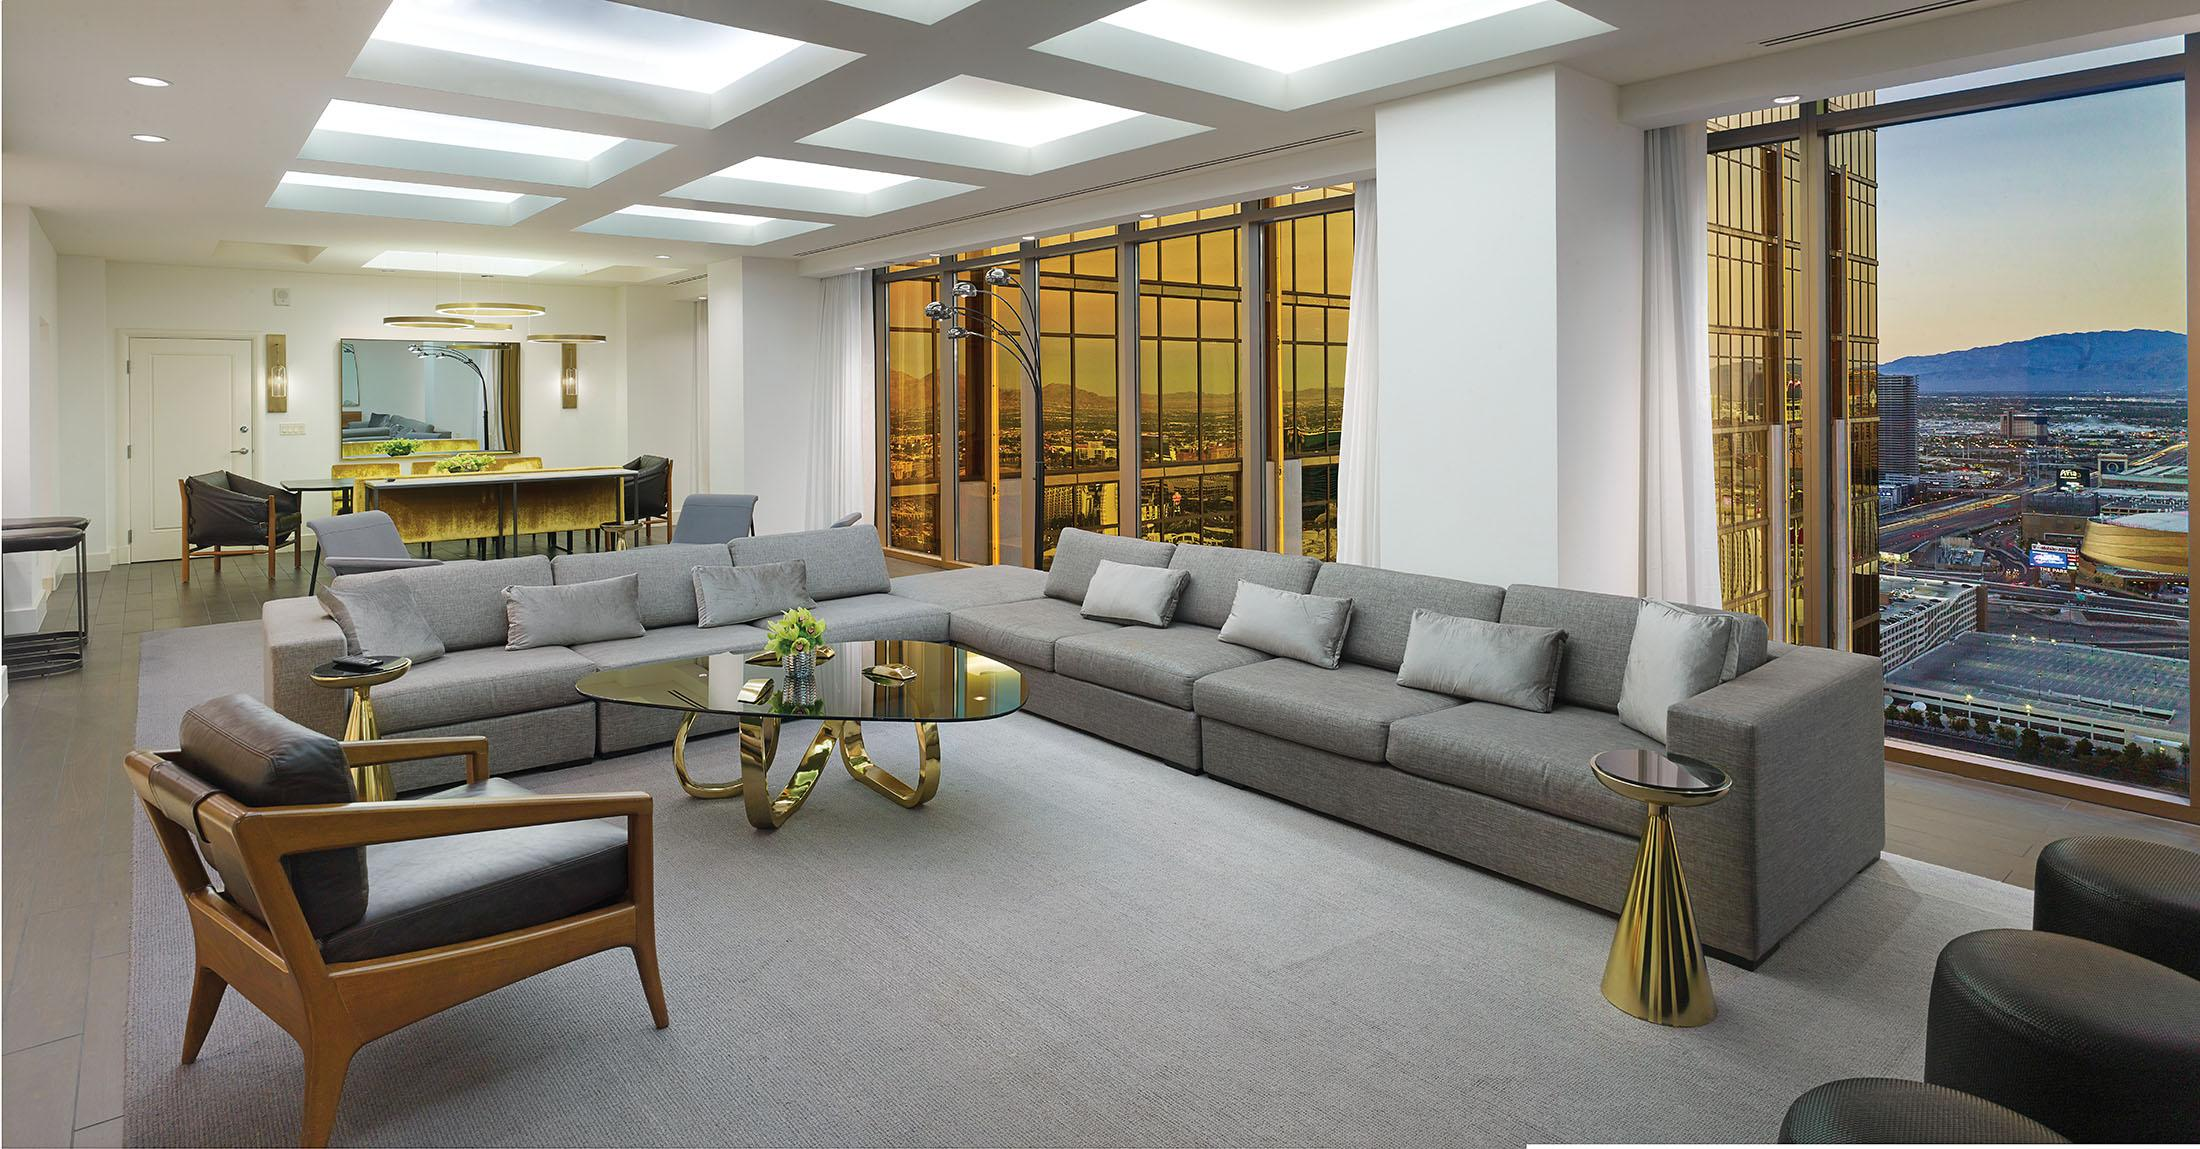 Grey sofas in large living room with view of Las Vegas strip